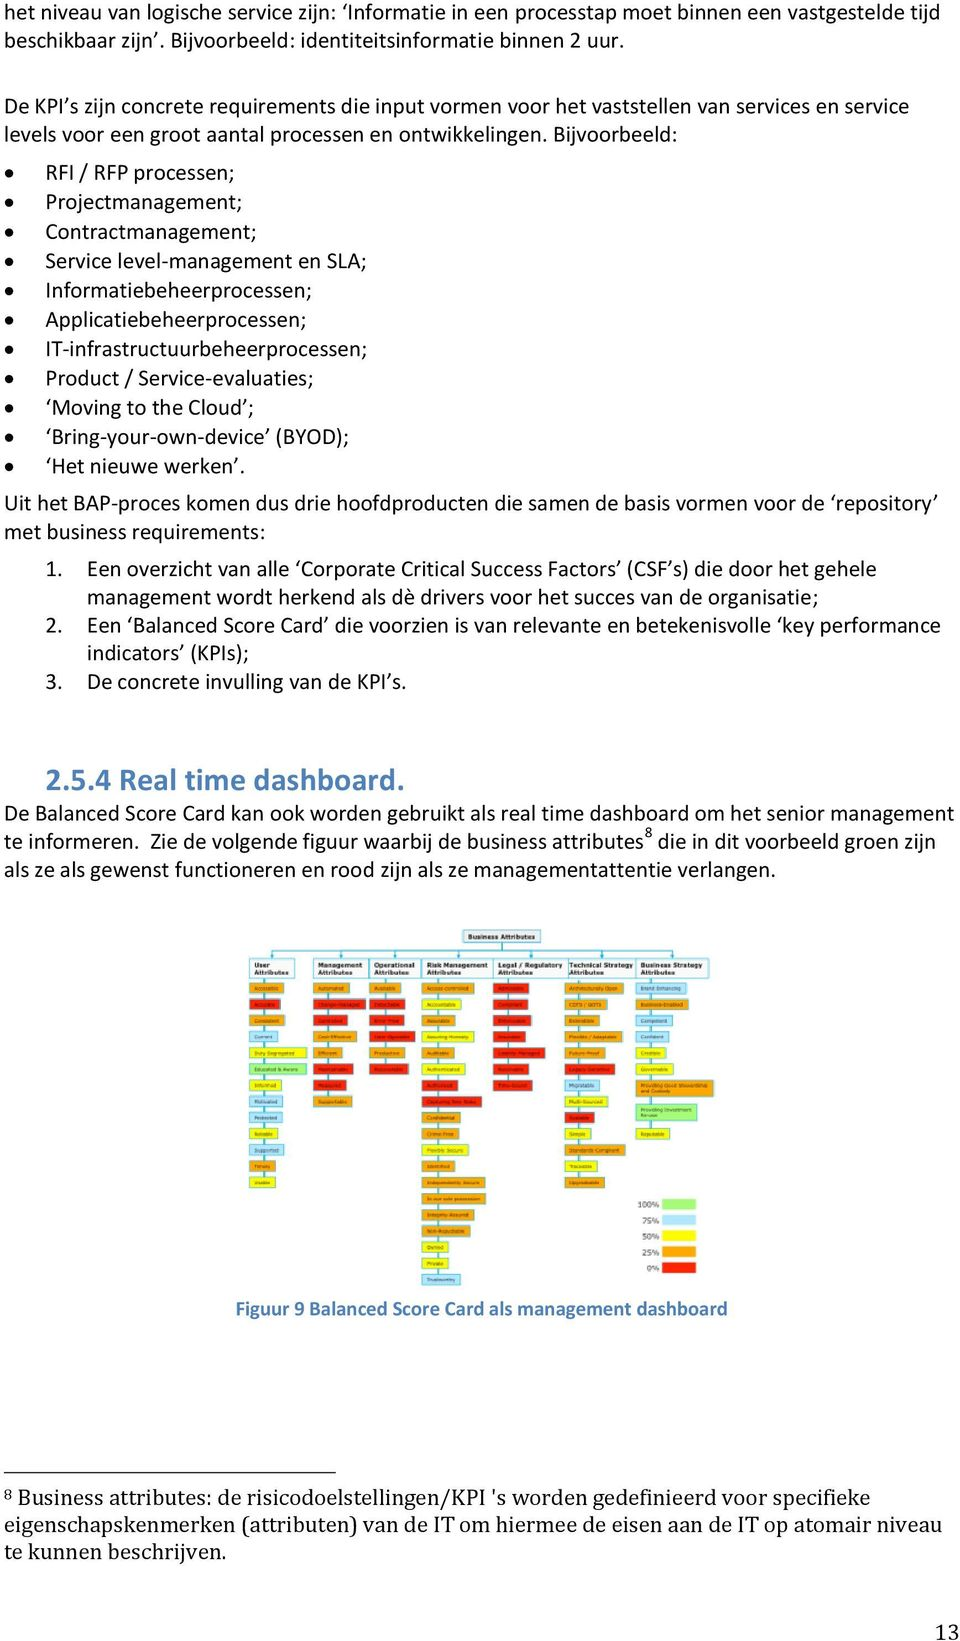 Bijvoorbeeld: RFI / RFP processen; Projectmanagement; Contractmanagement; Service level-management en SLA; Informatiebeheerprocessen; Applicatiebeheerprocessen; IT-infrastructuurbeheerprocessen;